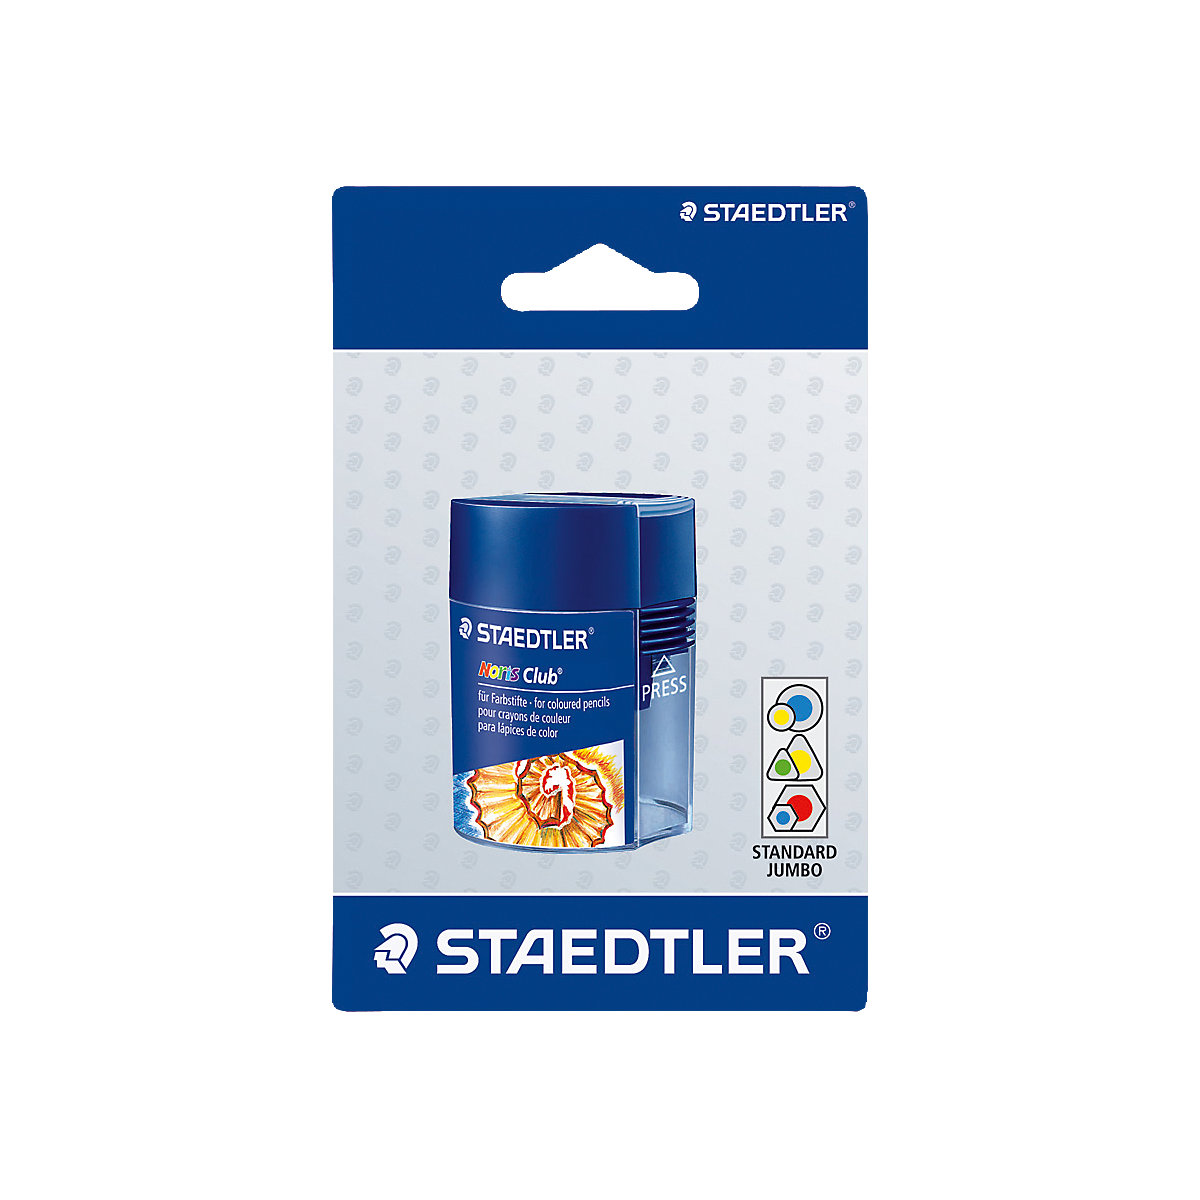 STAEDTLER Pencil Sharpeners 6918891 stationery office school supplies writing goods Office round circle computer office office electronics printer supplies ink cartridges g